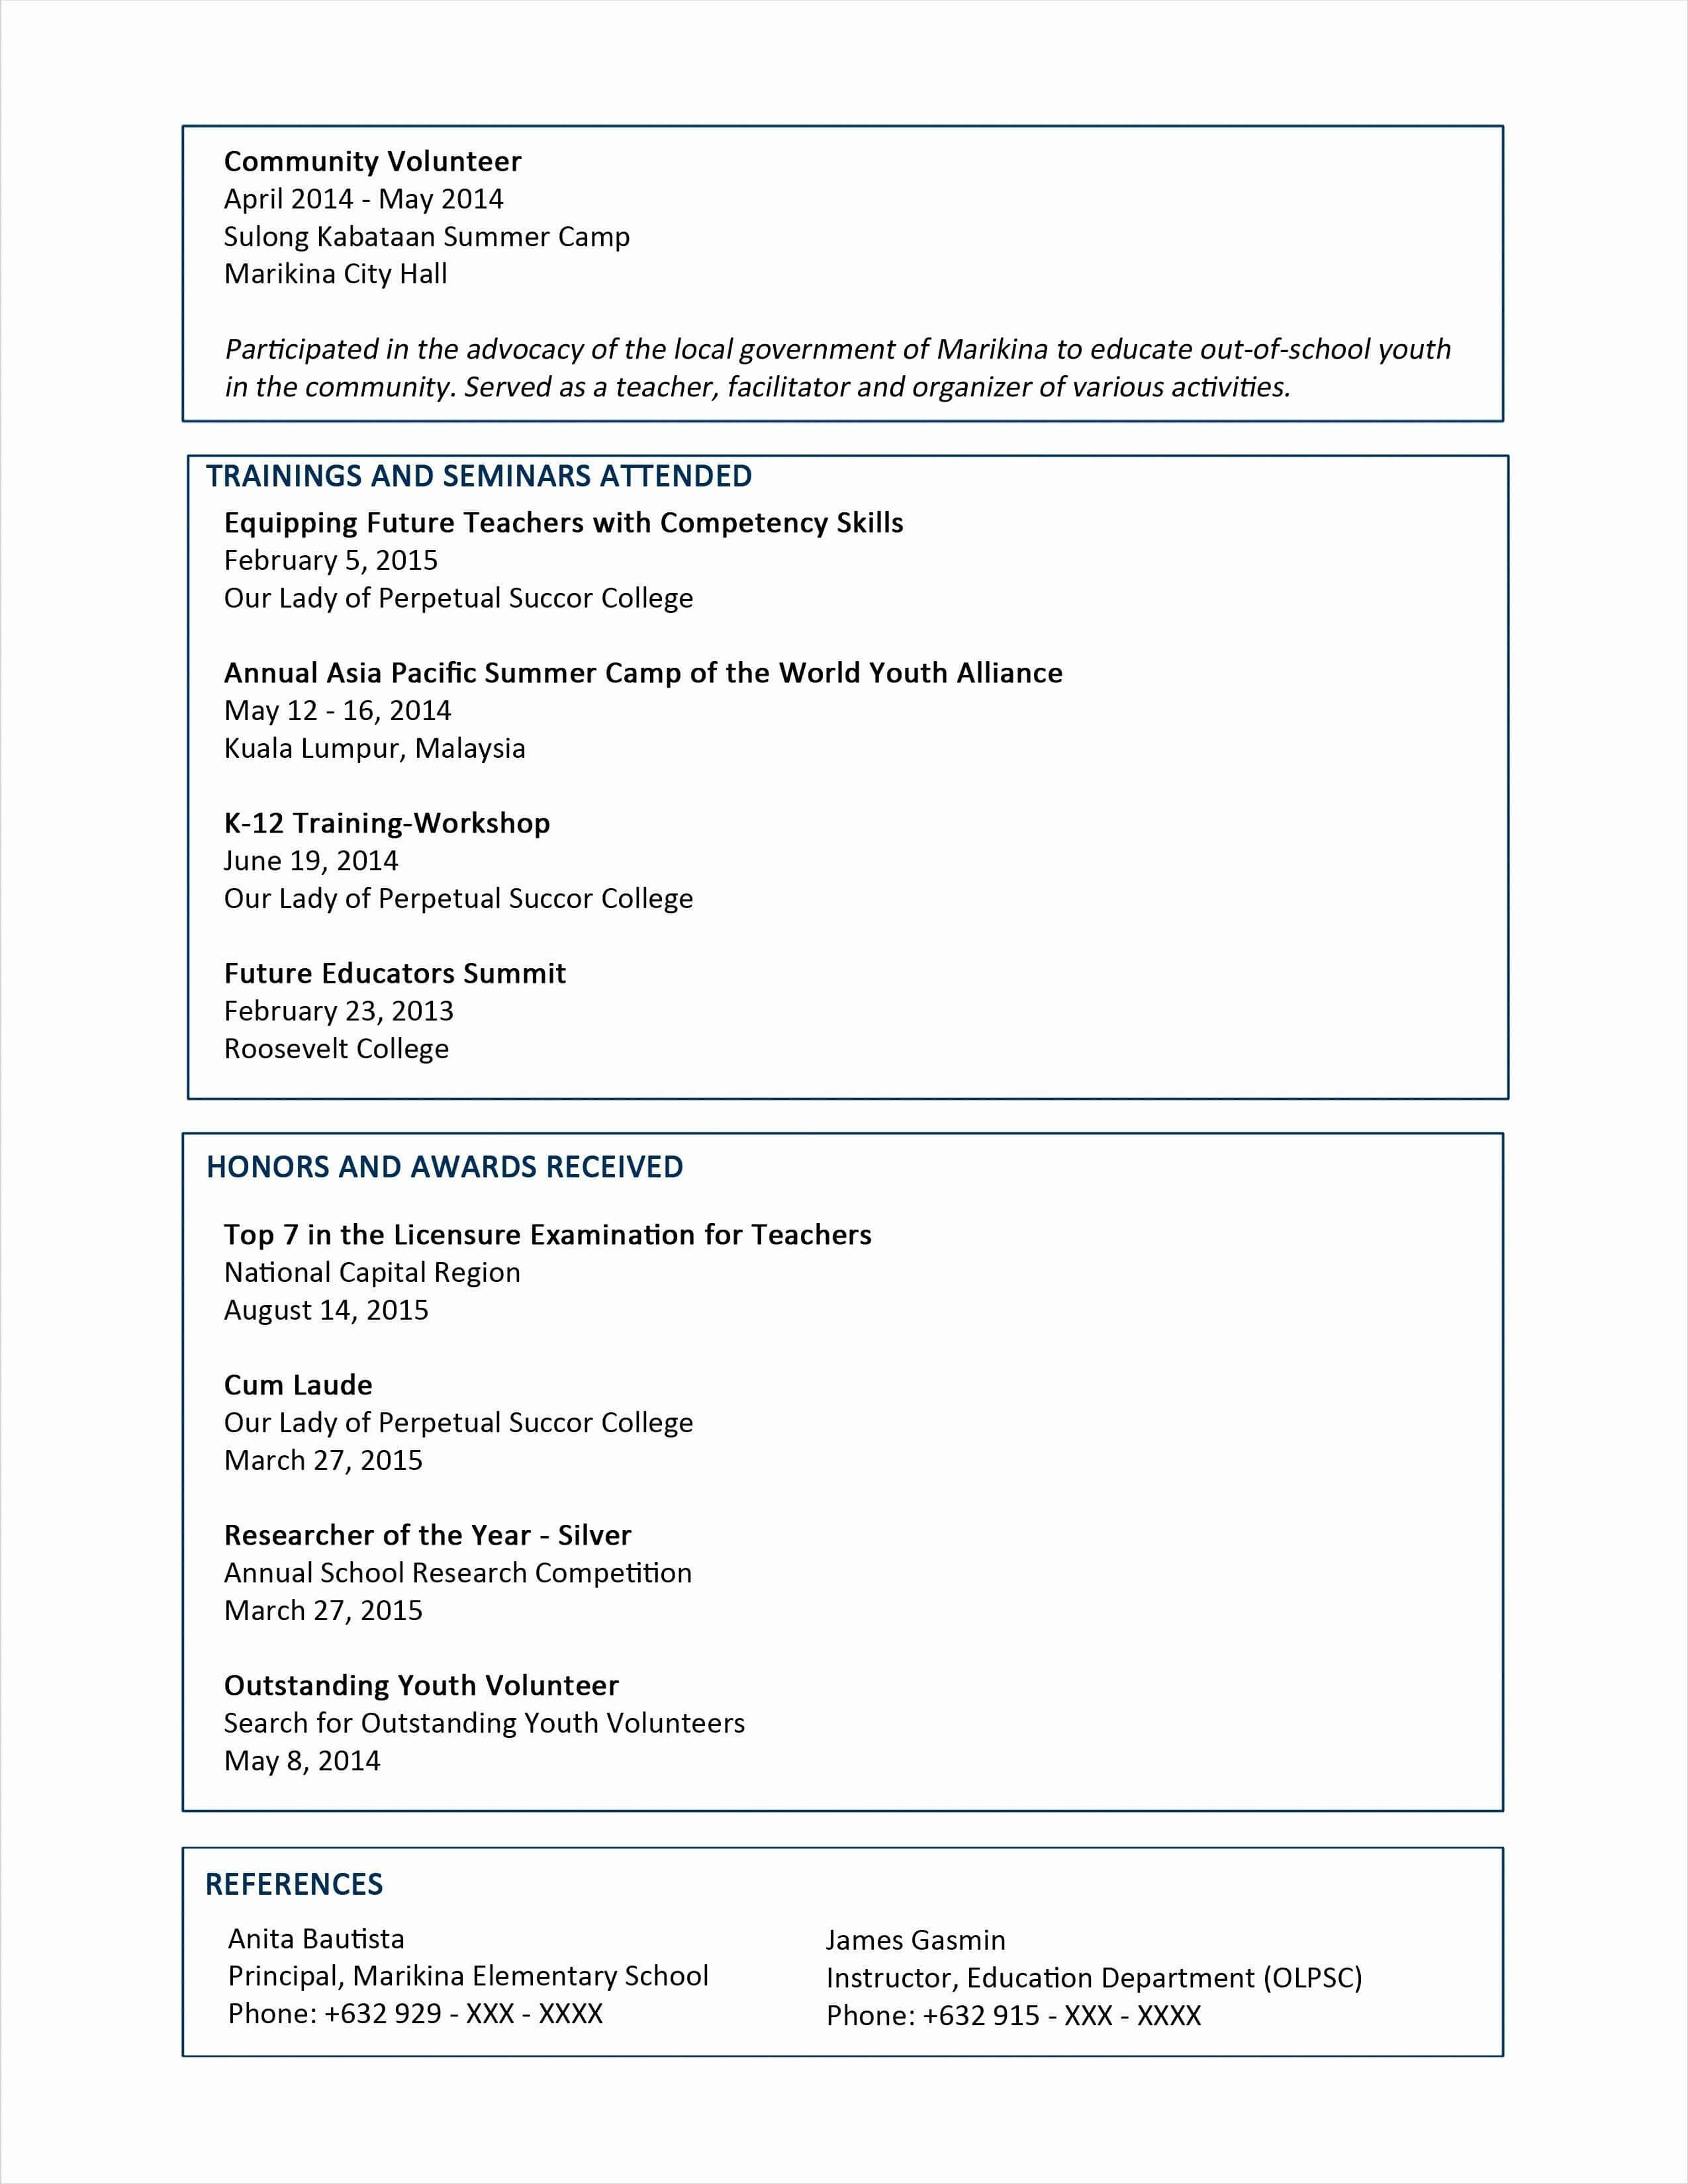 Resume Templates For Microsoft Word 2013 146574 Tem With Resume Templates Word 2013